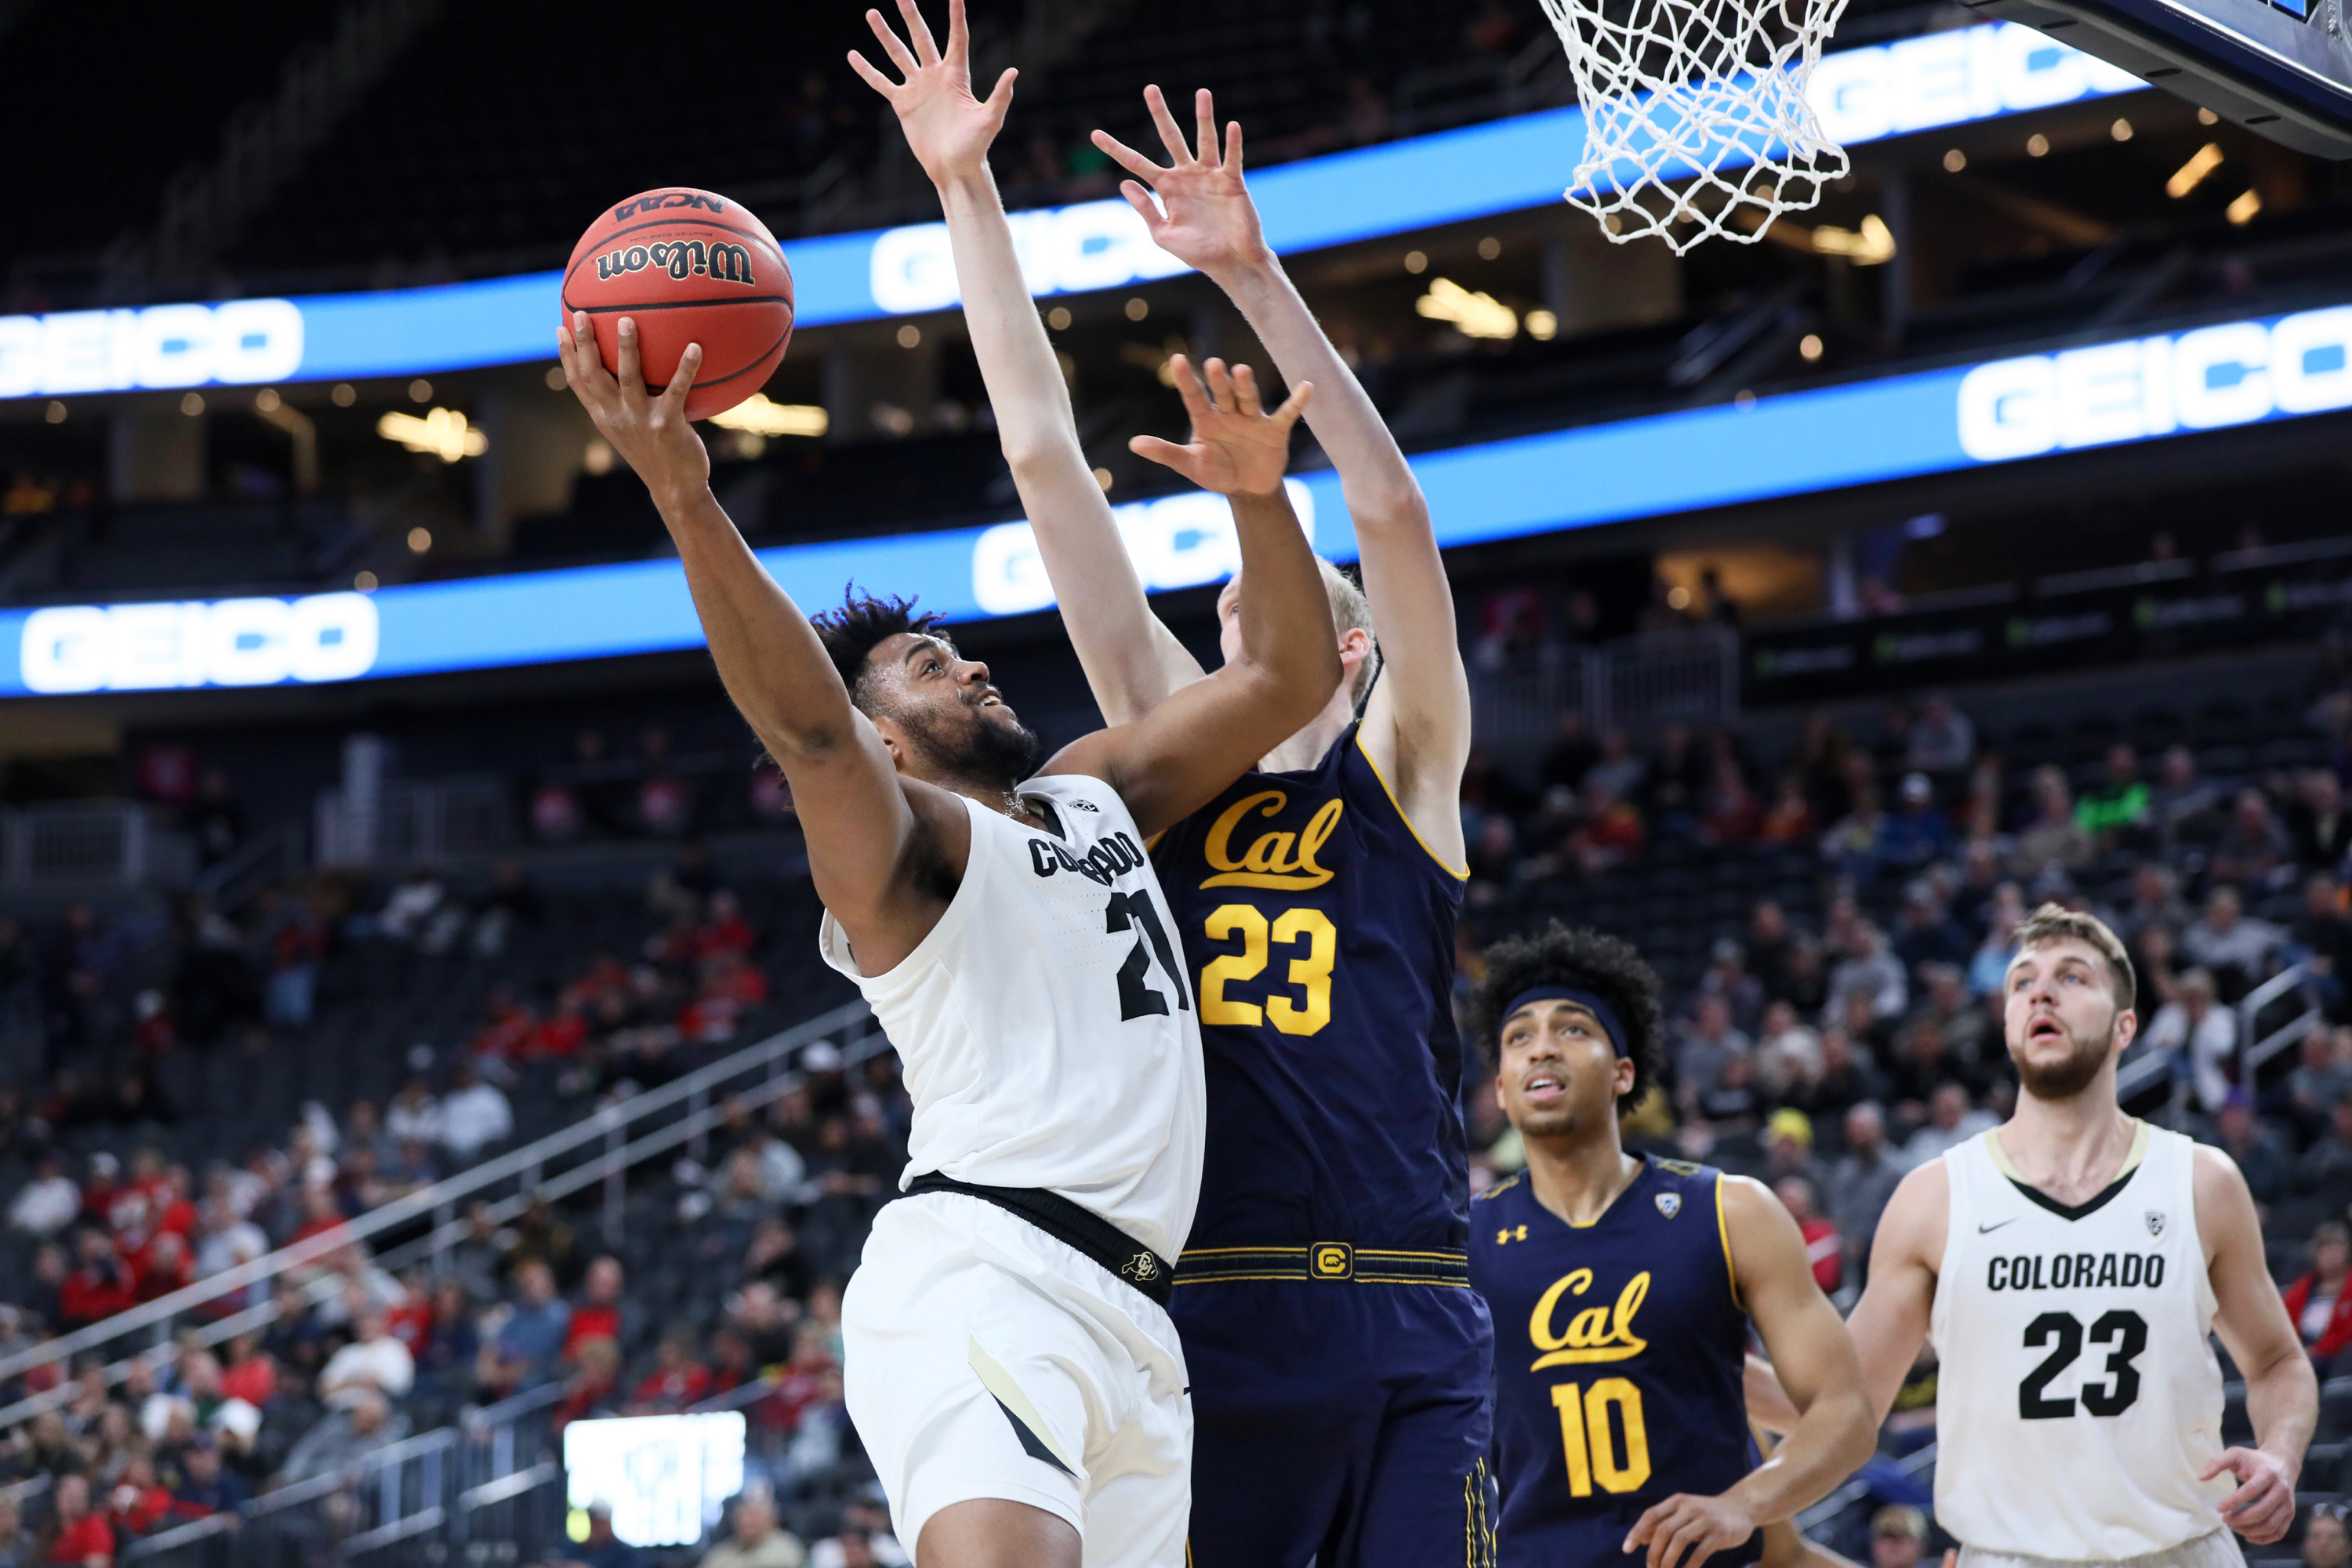 Buffs outlast Cal, eek out 56-51 win in first round of Pac-12 Tourney